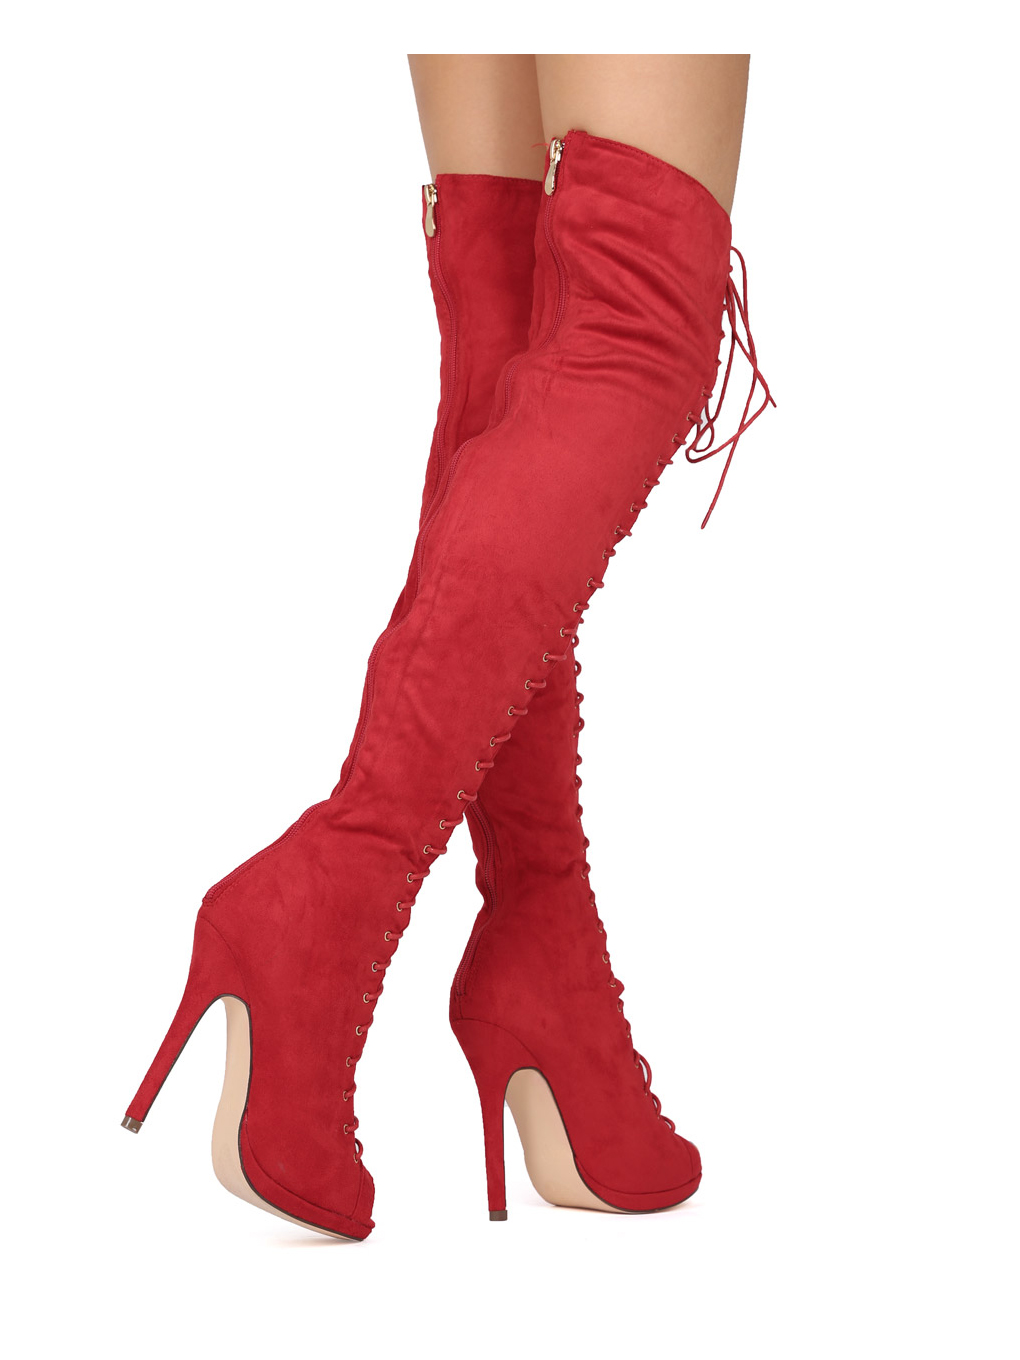 Liliana FC02 Faux Suede Thigh High Peep Toe Lace Up Stiletto Boot